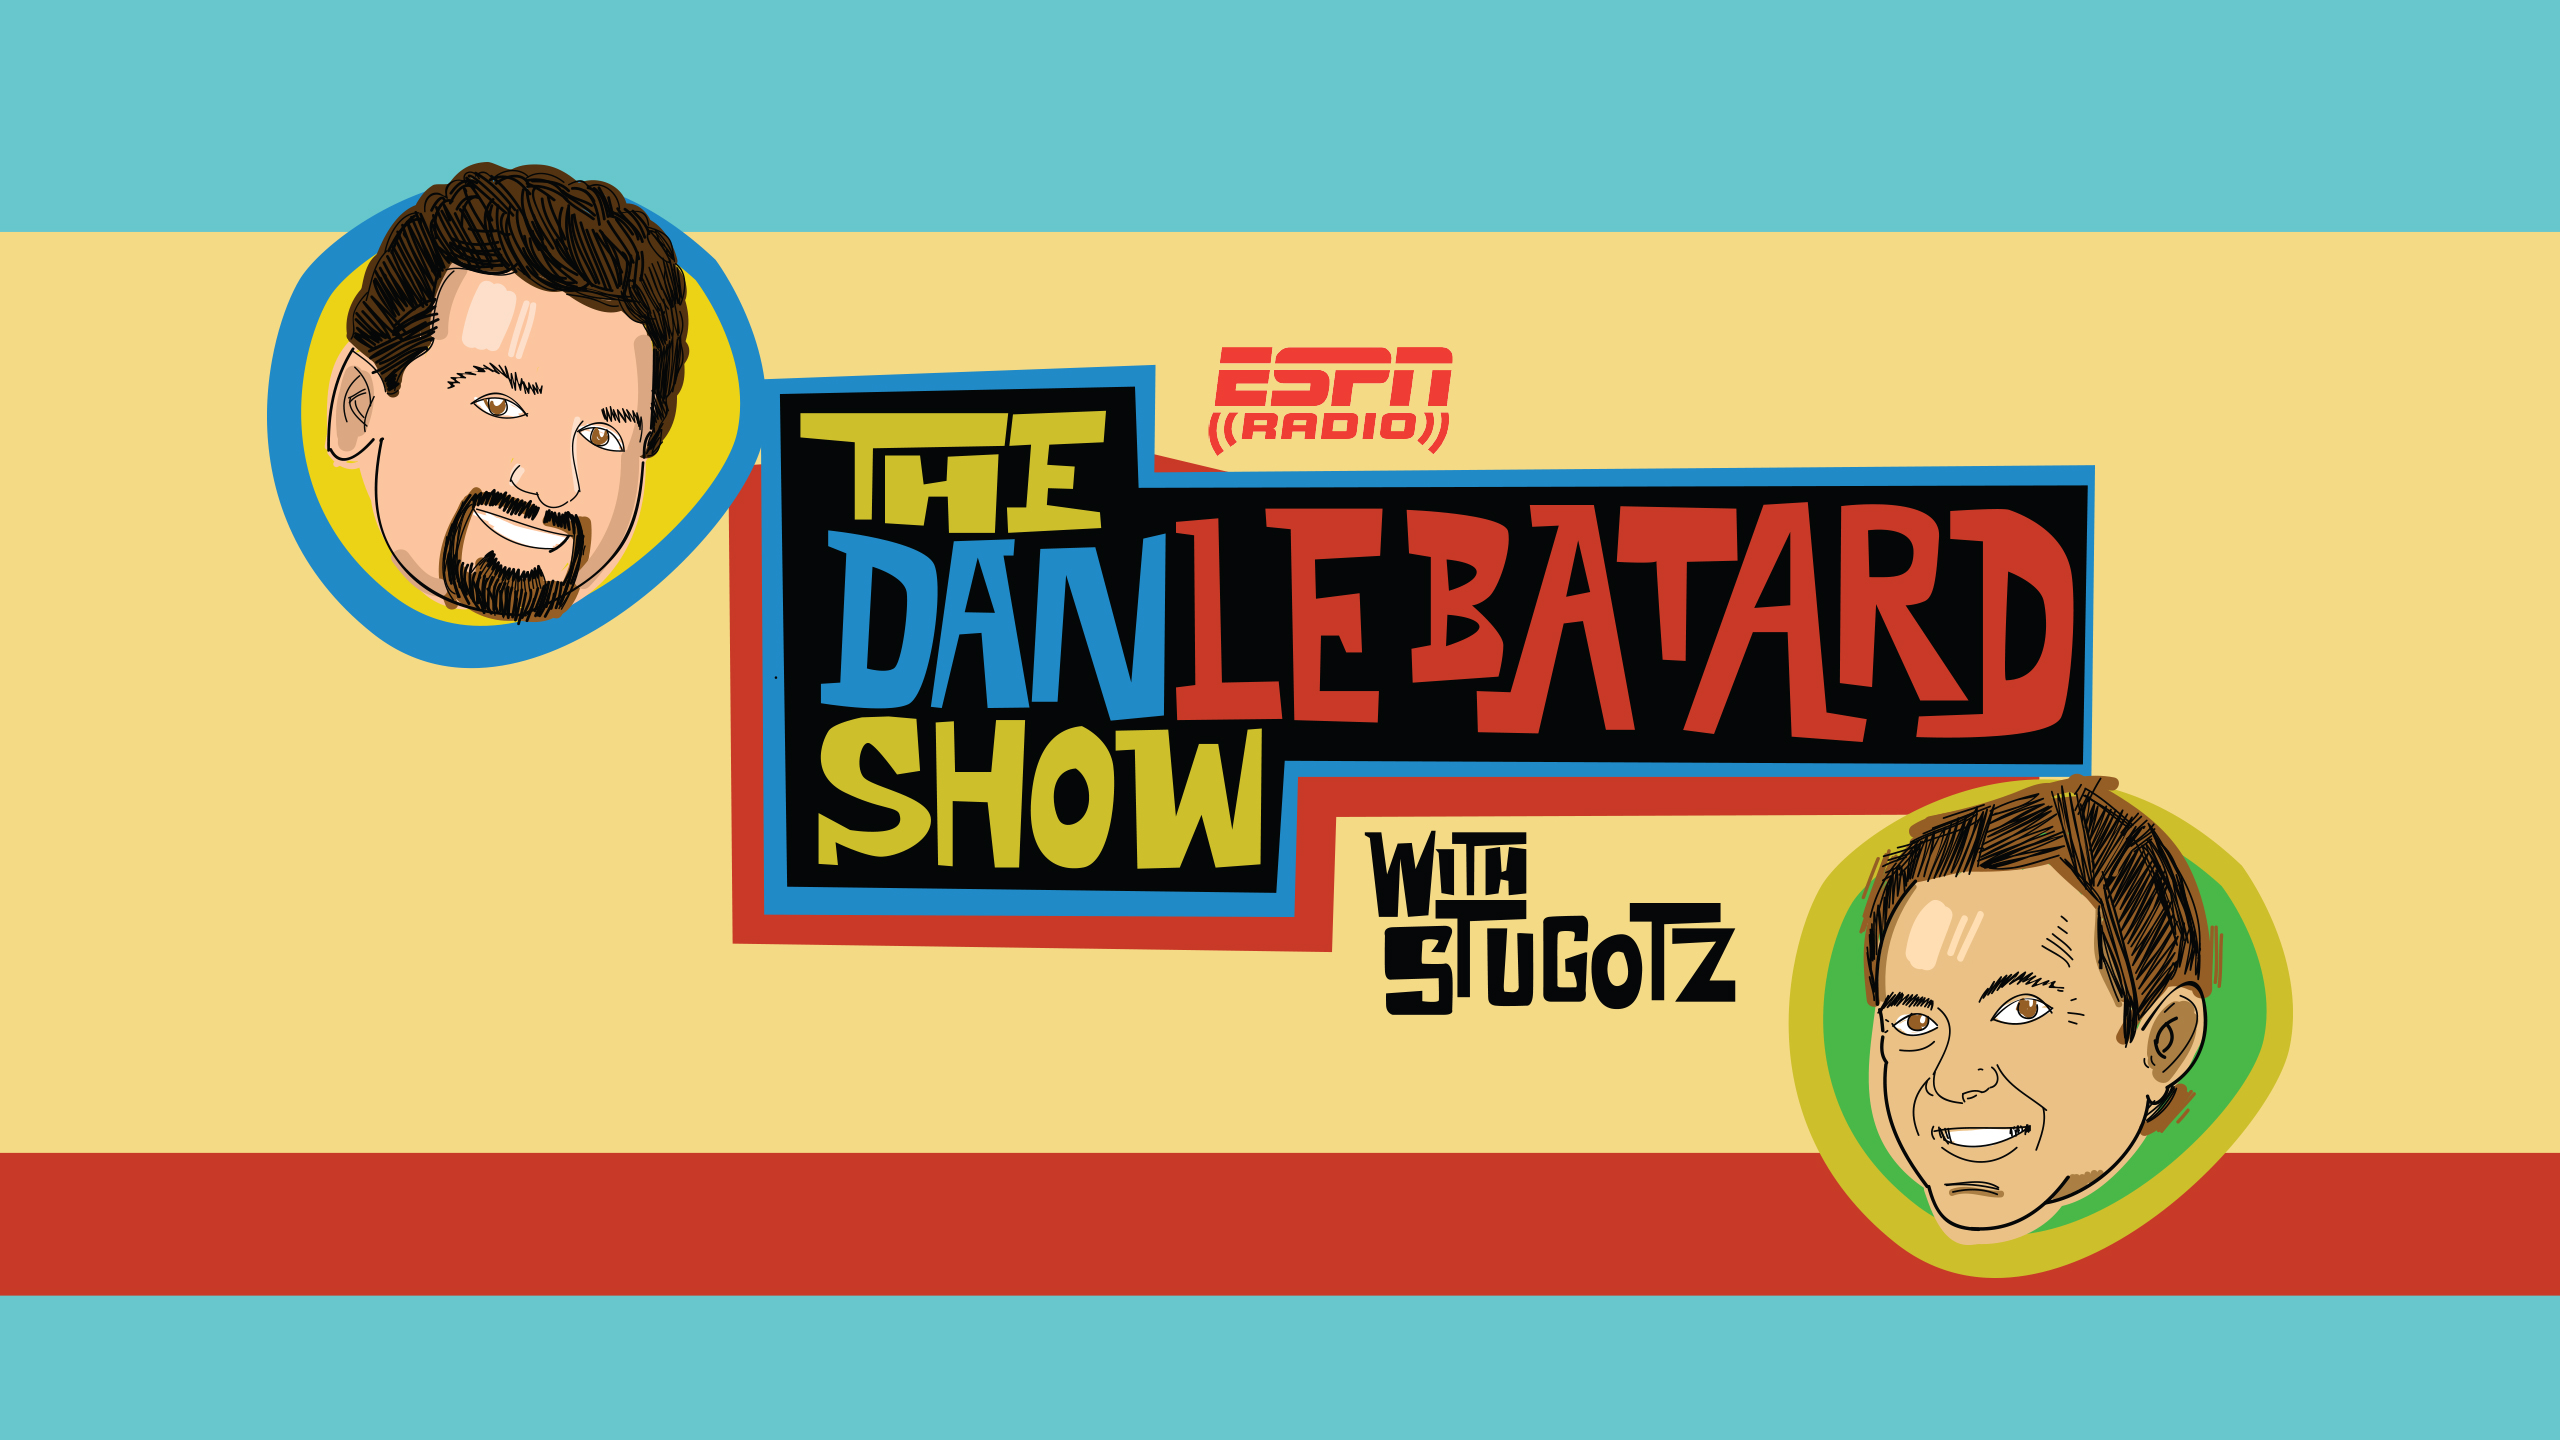 Wed, 1/23 - The Dan Le Batard Show with Stugotz Presented by Progressive